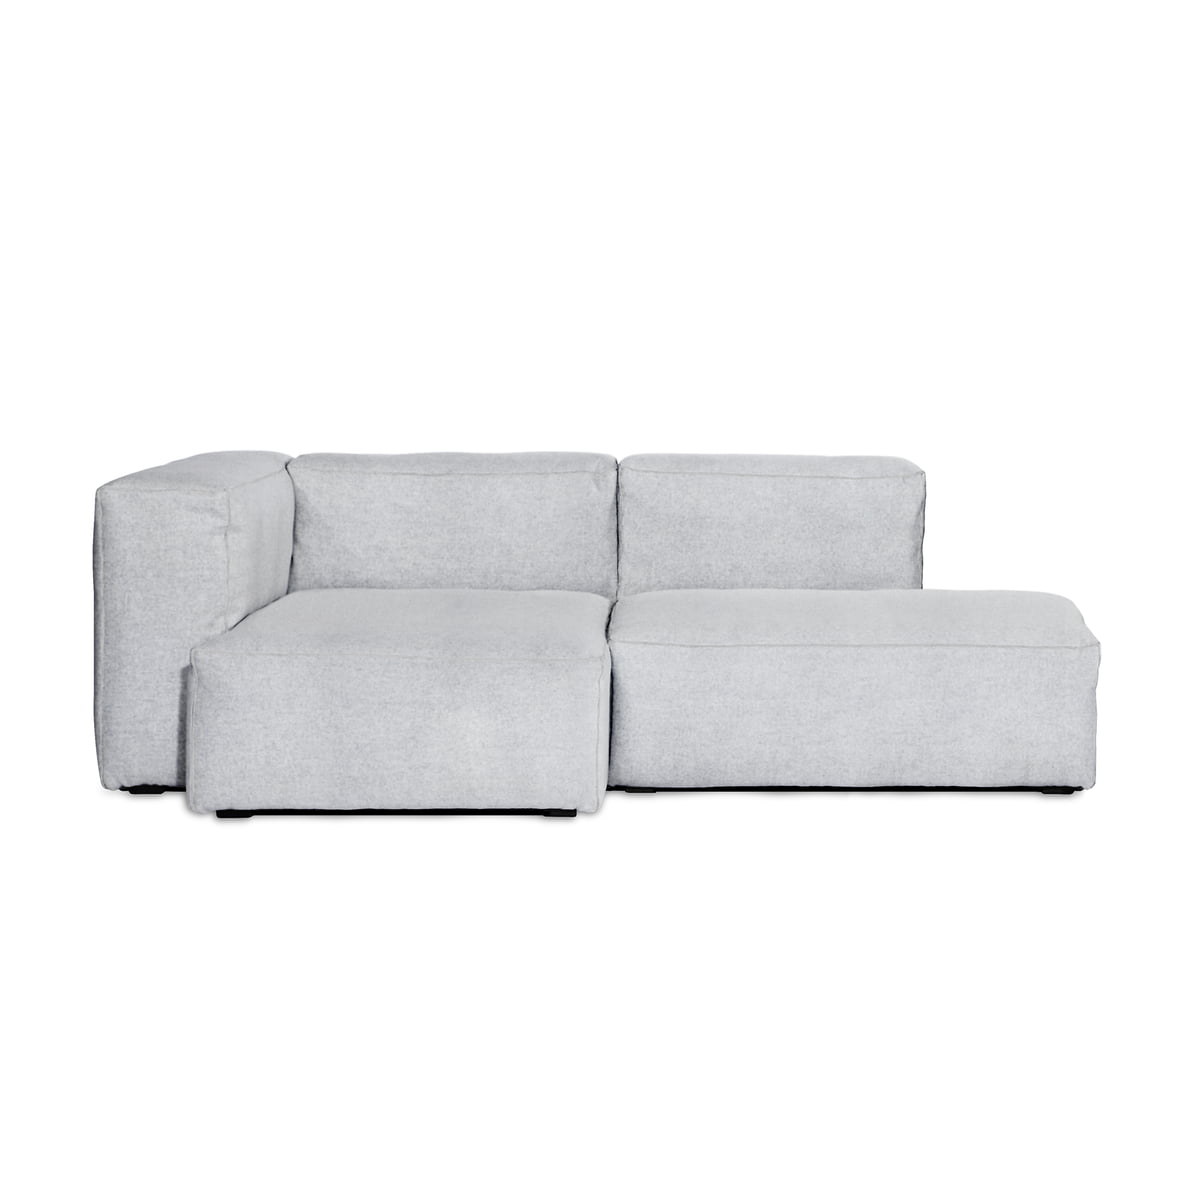 2 5 mags lounge sofa by hay for Sofa 2 sitzer